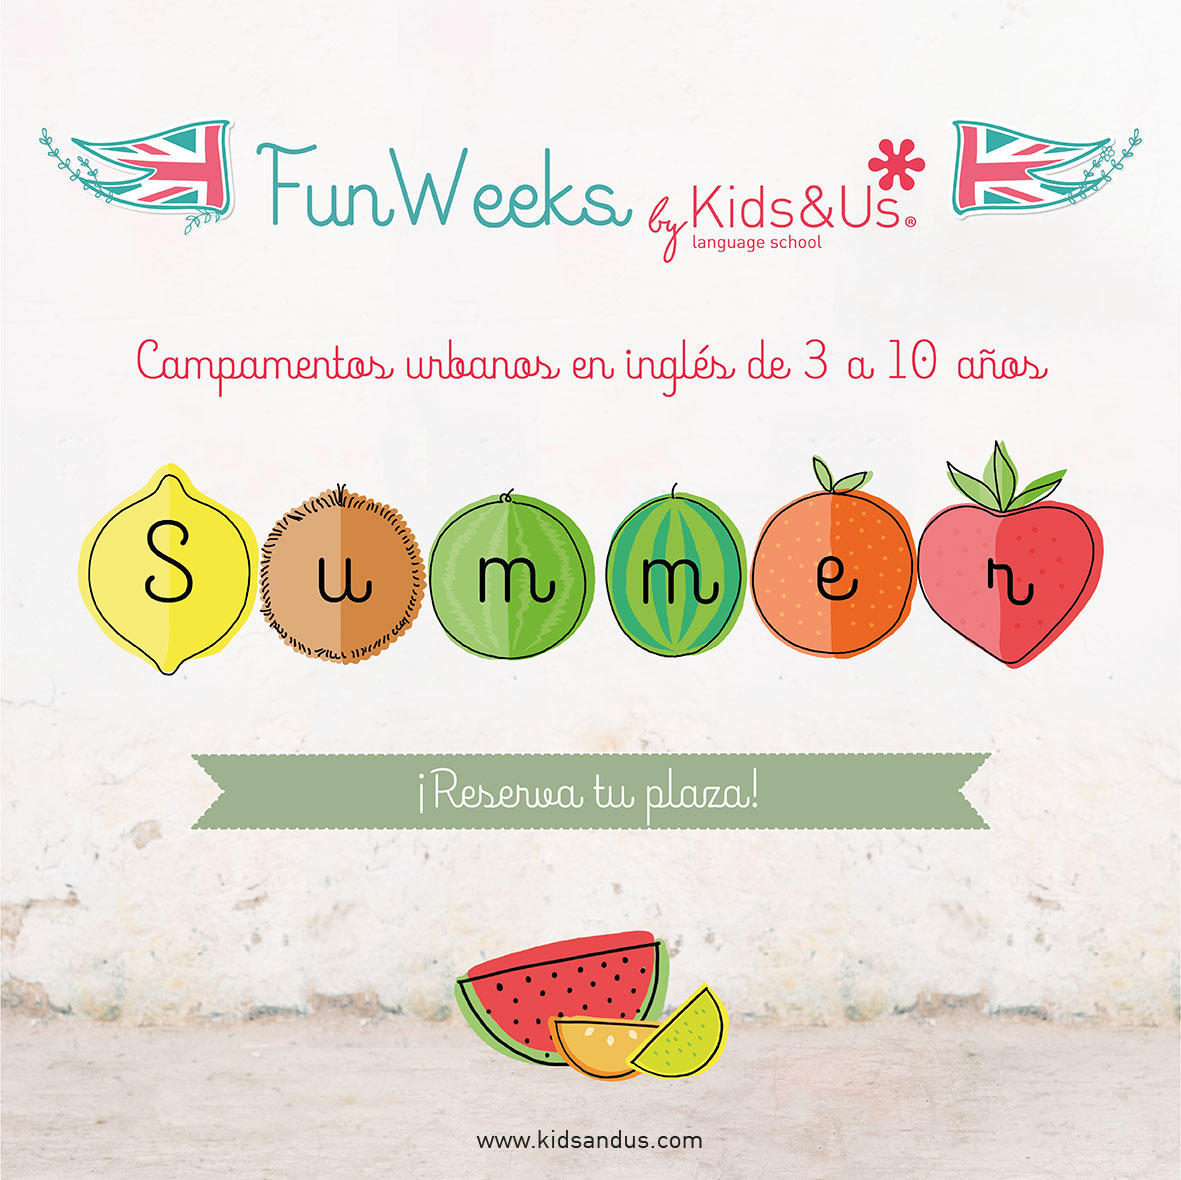 ¡Vuelven las Summer Fun Weeks de Kids&Us!